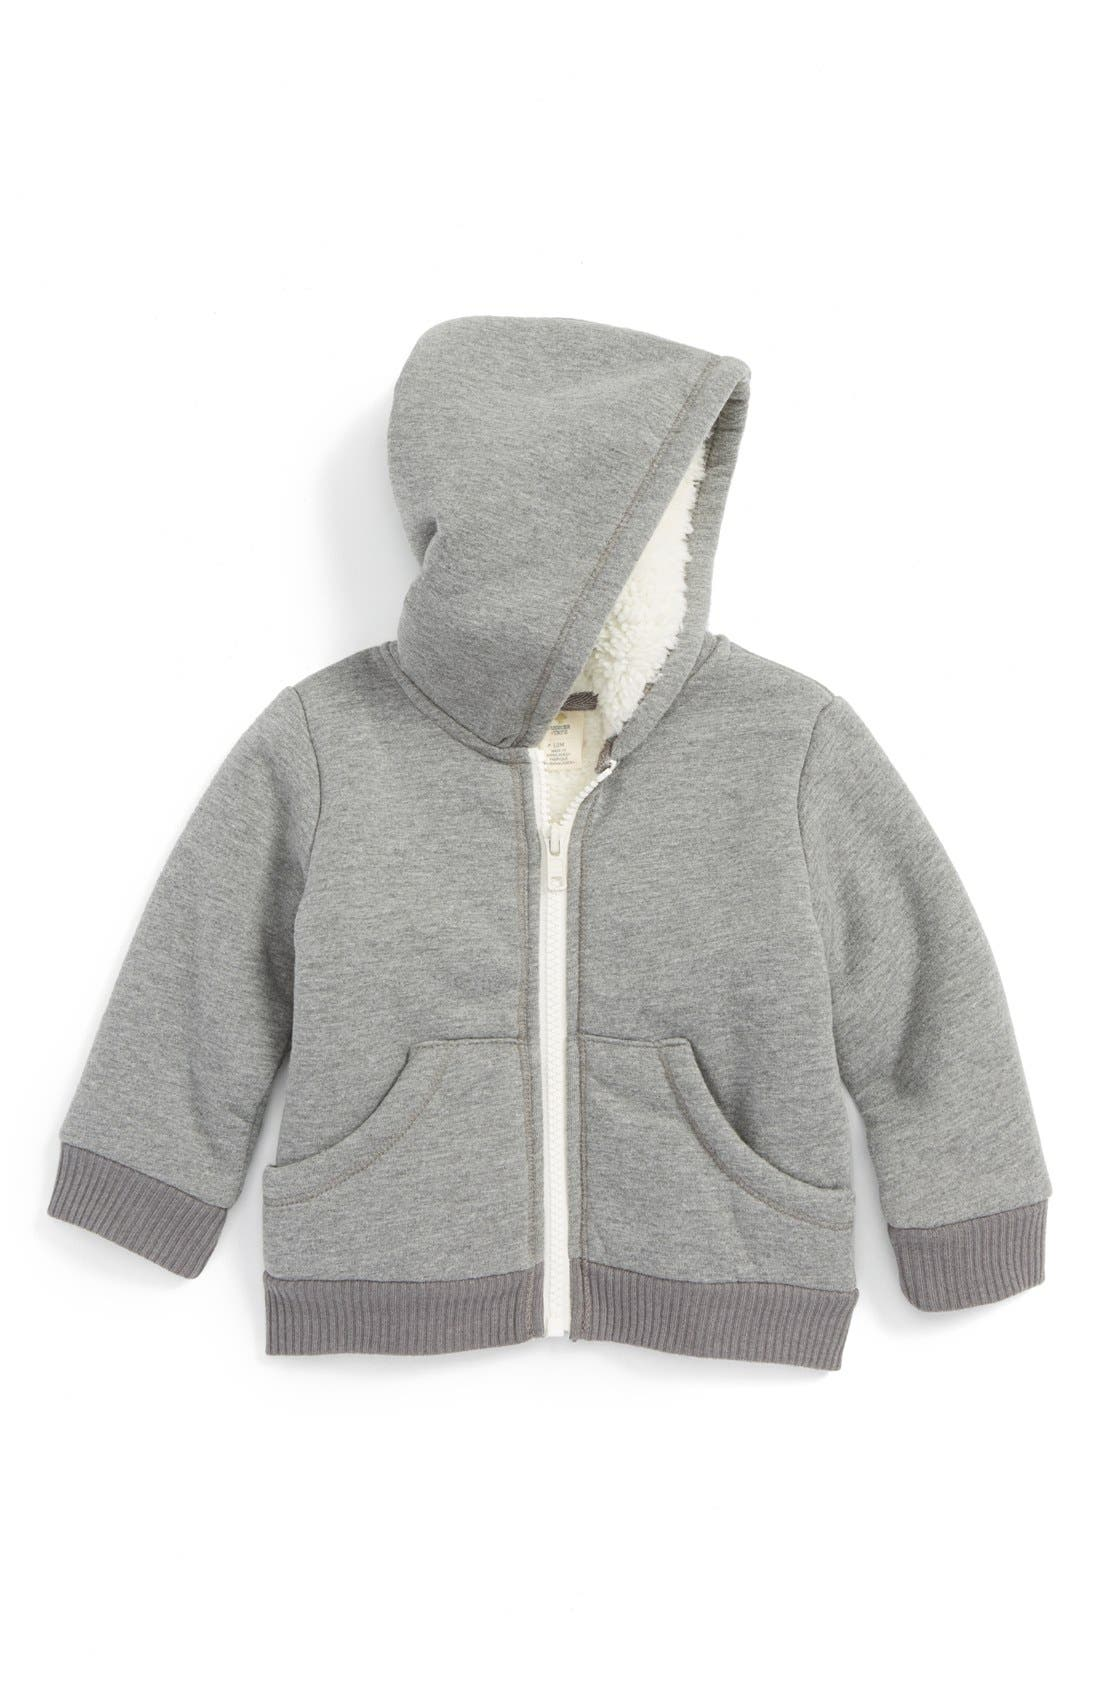 Fuzzy Lined Jacket,                         Main,                         color, Grey Cloudy Heather